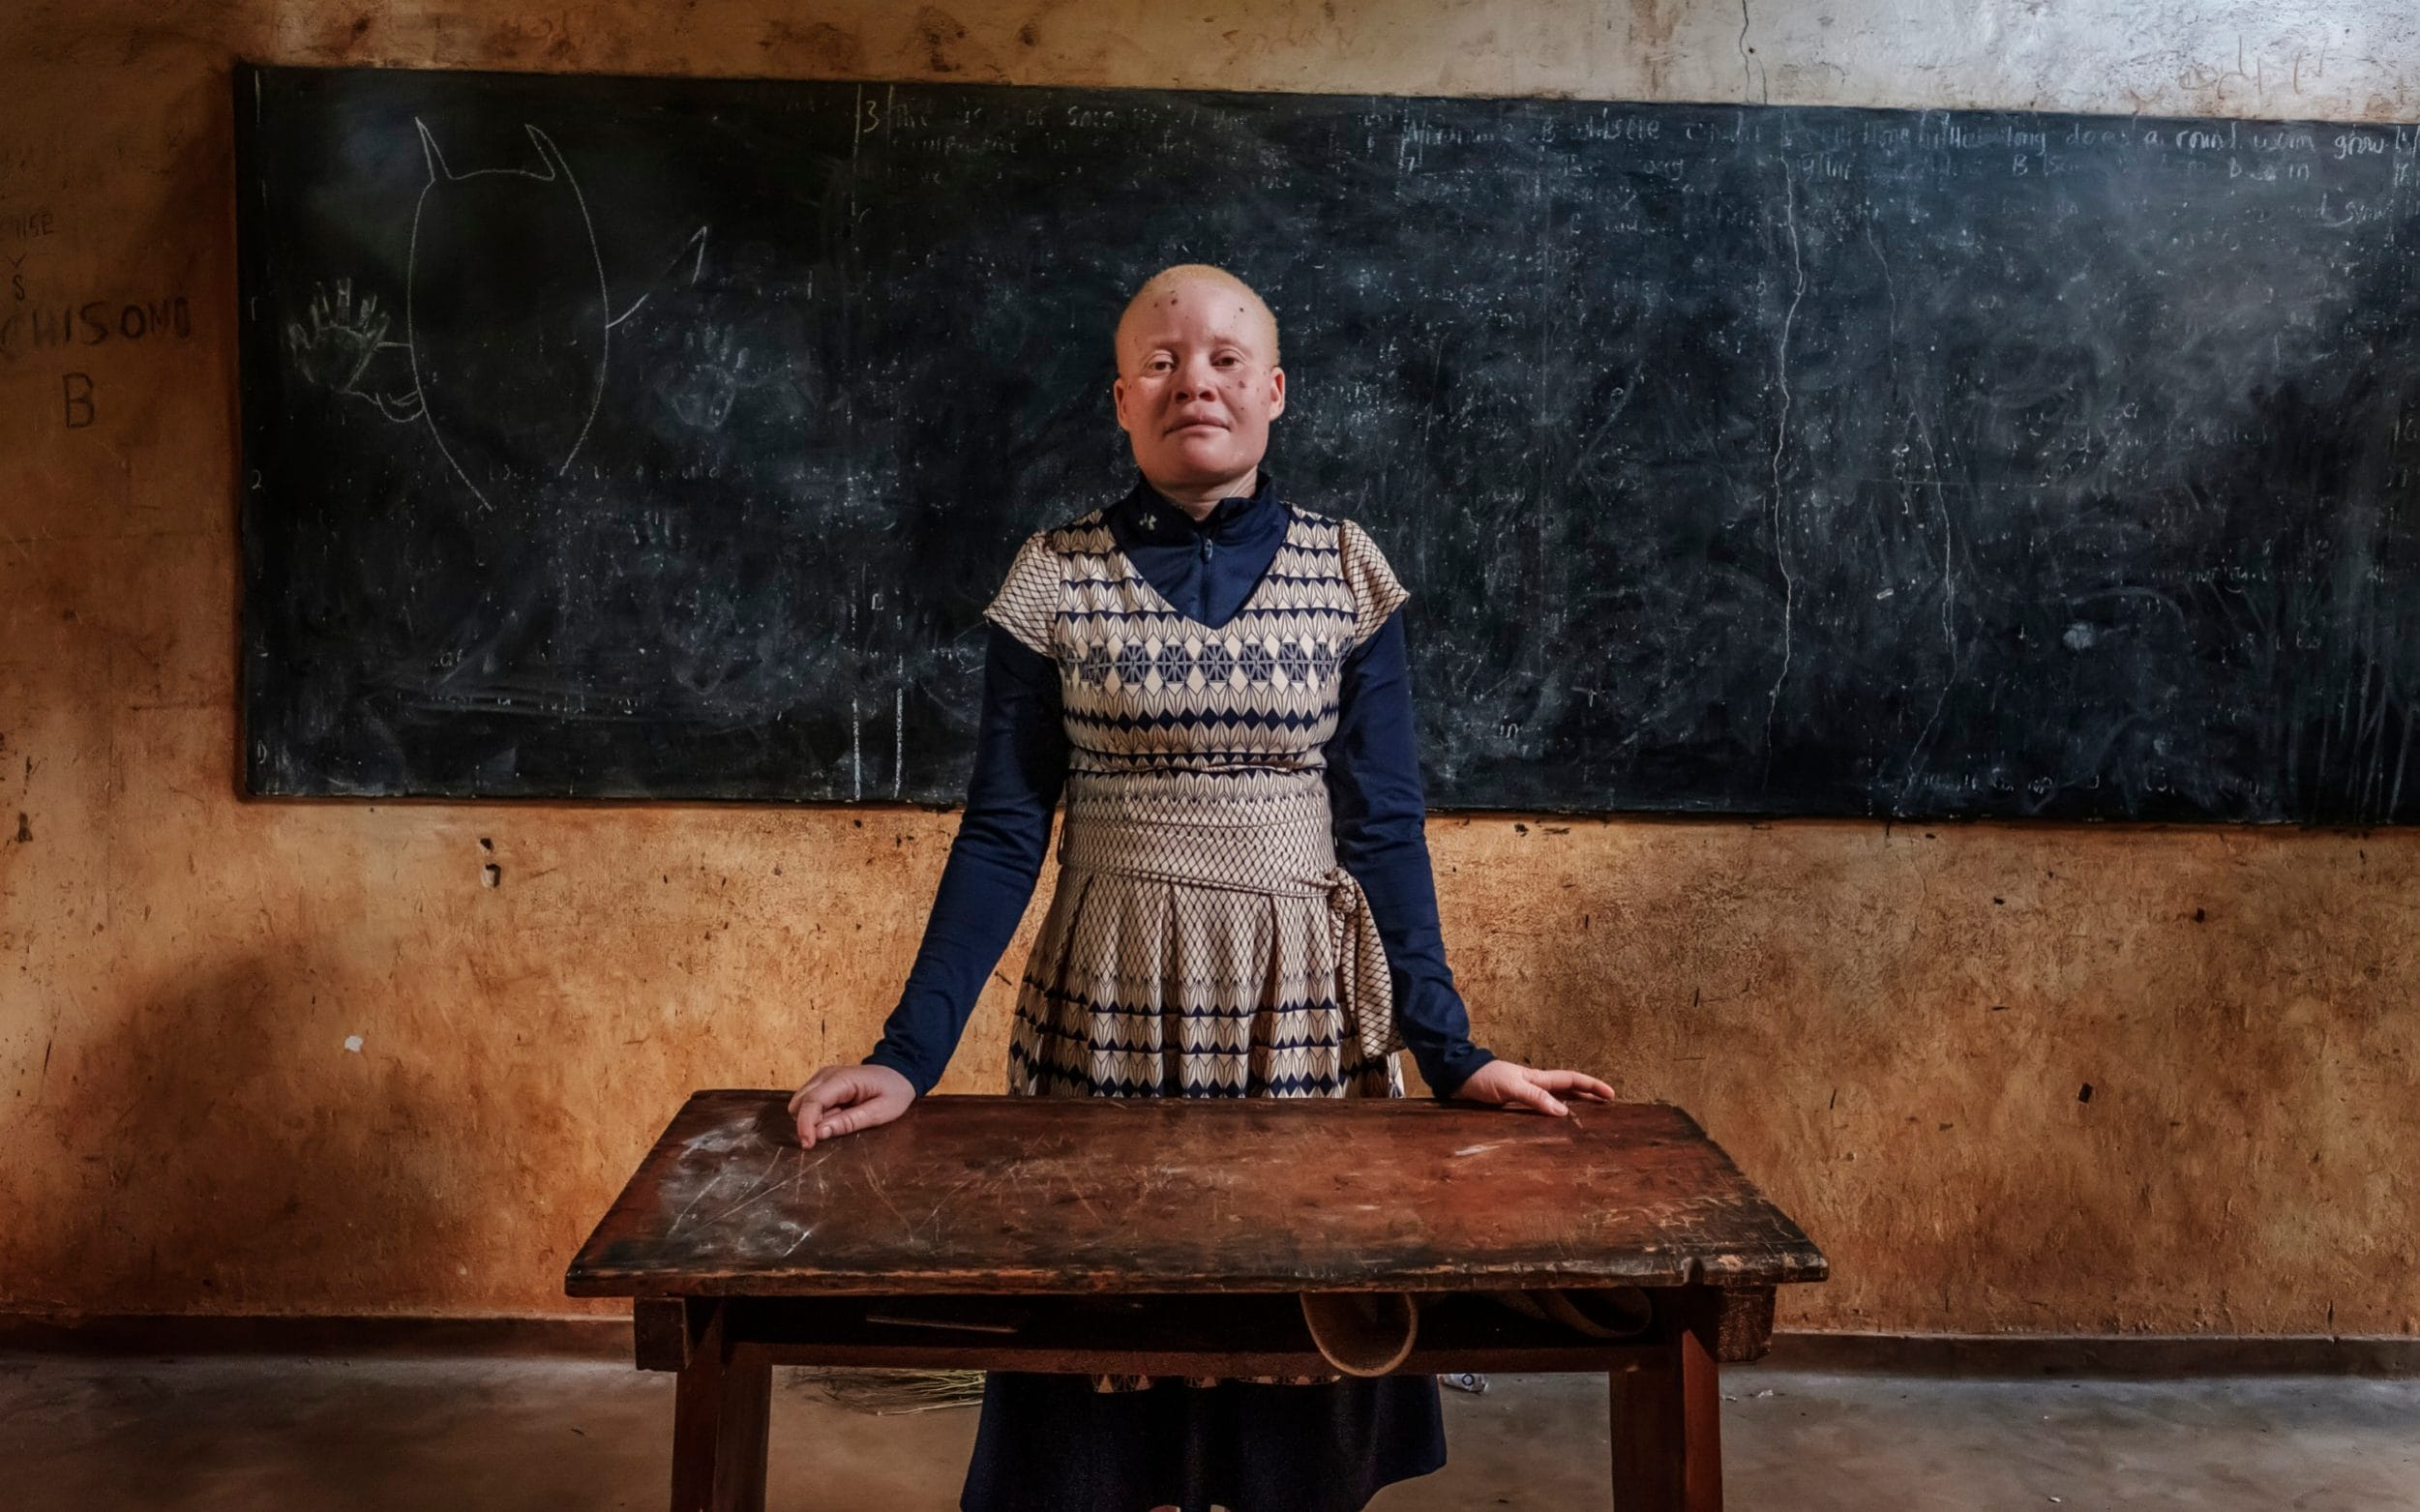 Bertha Ngalande, an albino teacher, lives in fear after a possible kidnapping attempt